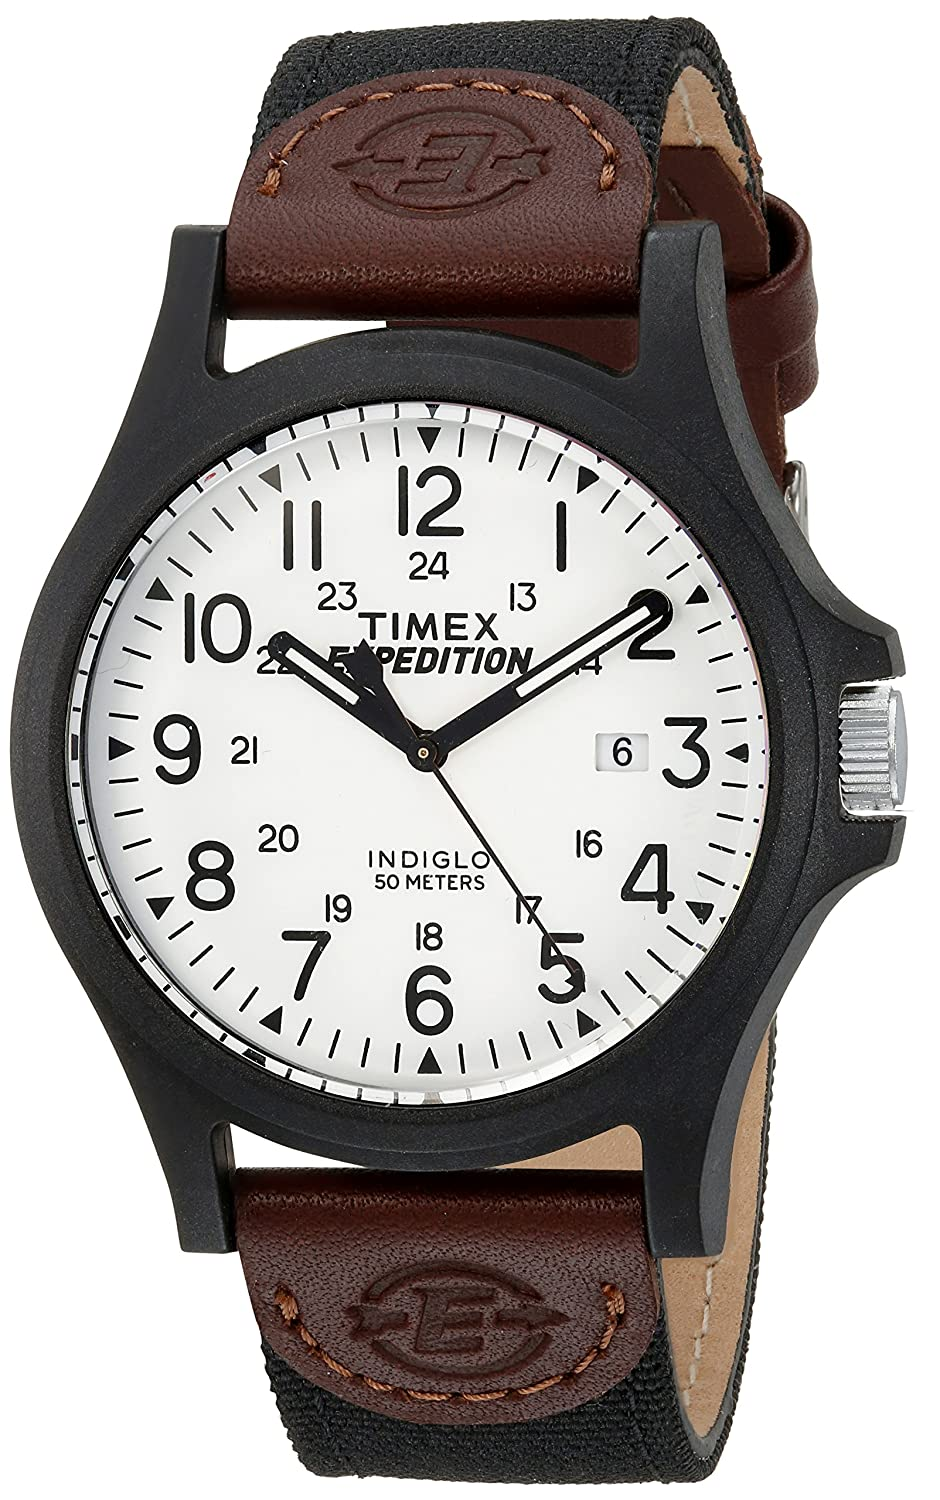 Timex Men's Tw4 B08200 Expedition Acadia Black/Brown/White Leather/Nylon Strap Watch by Timex